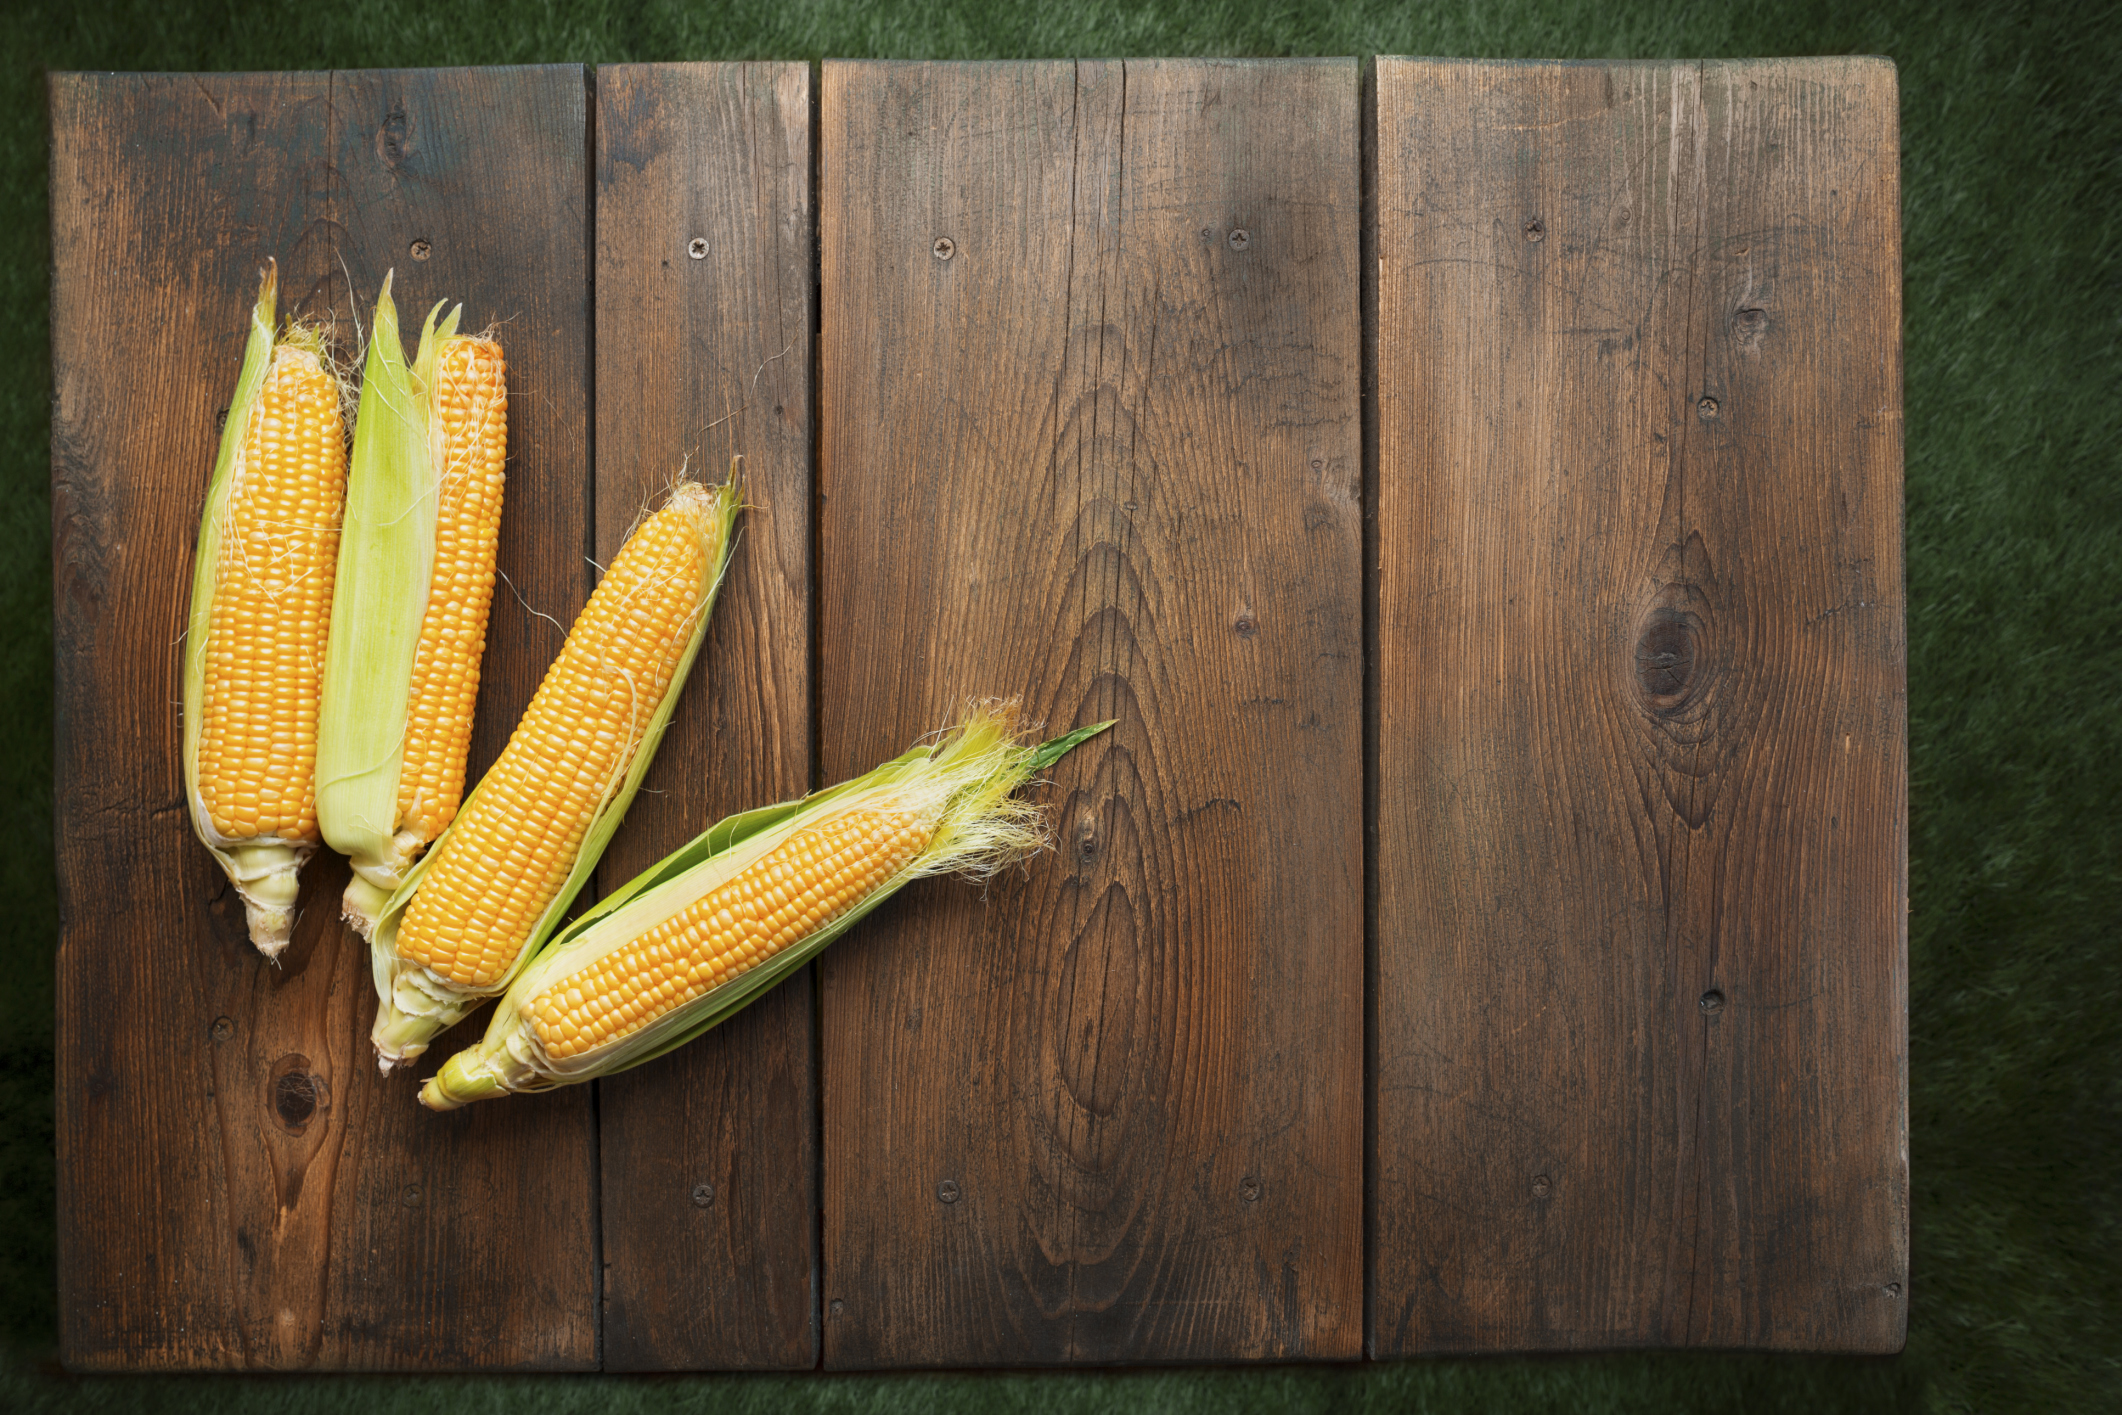 Corn on wood